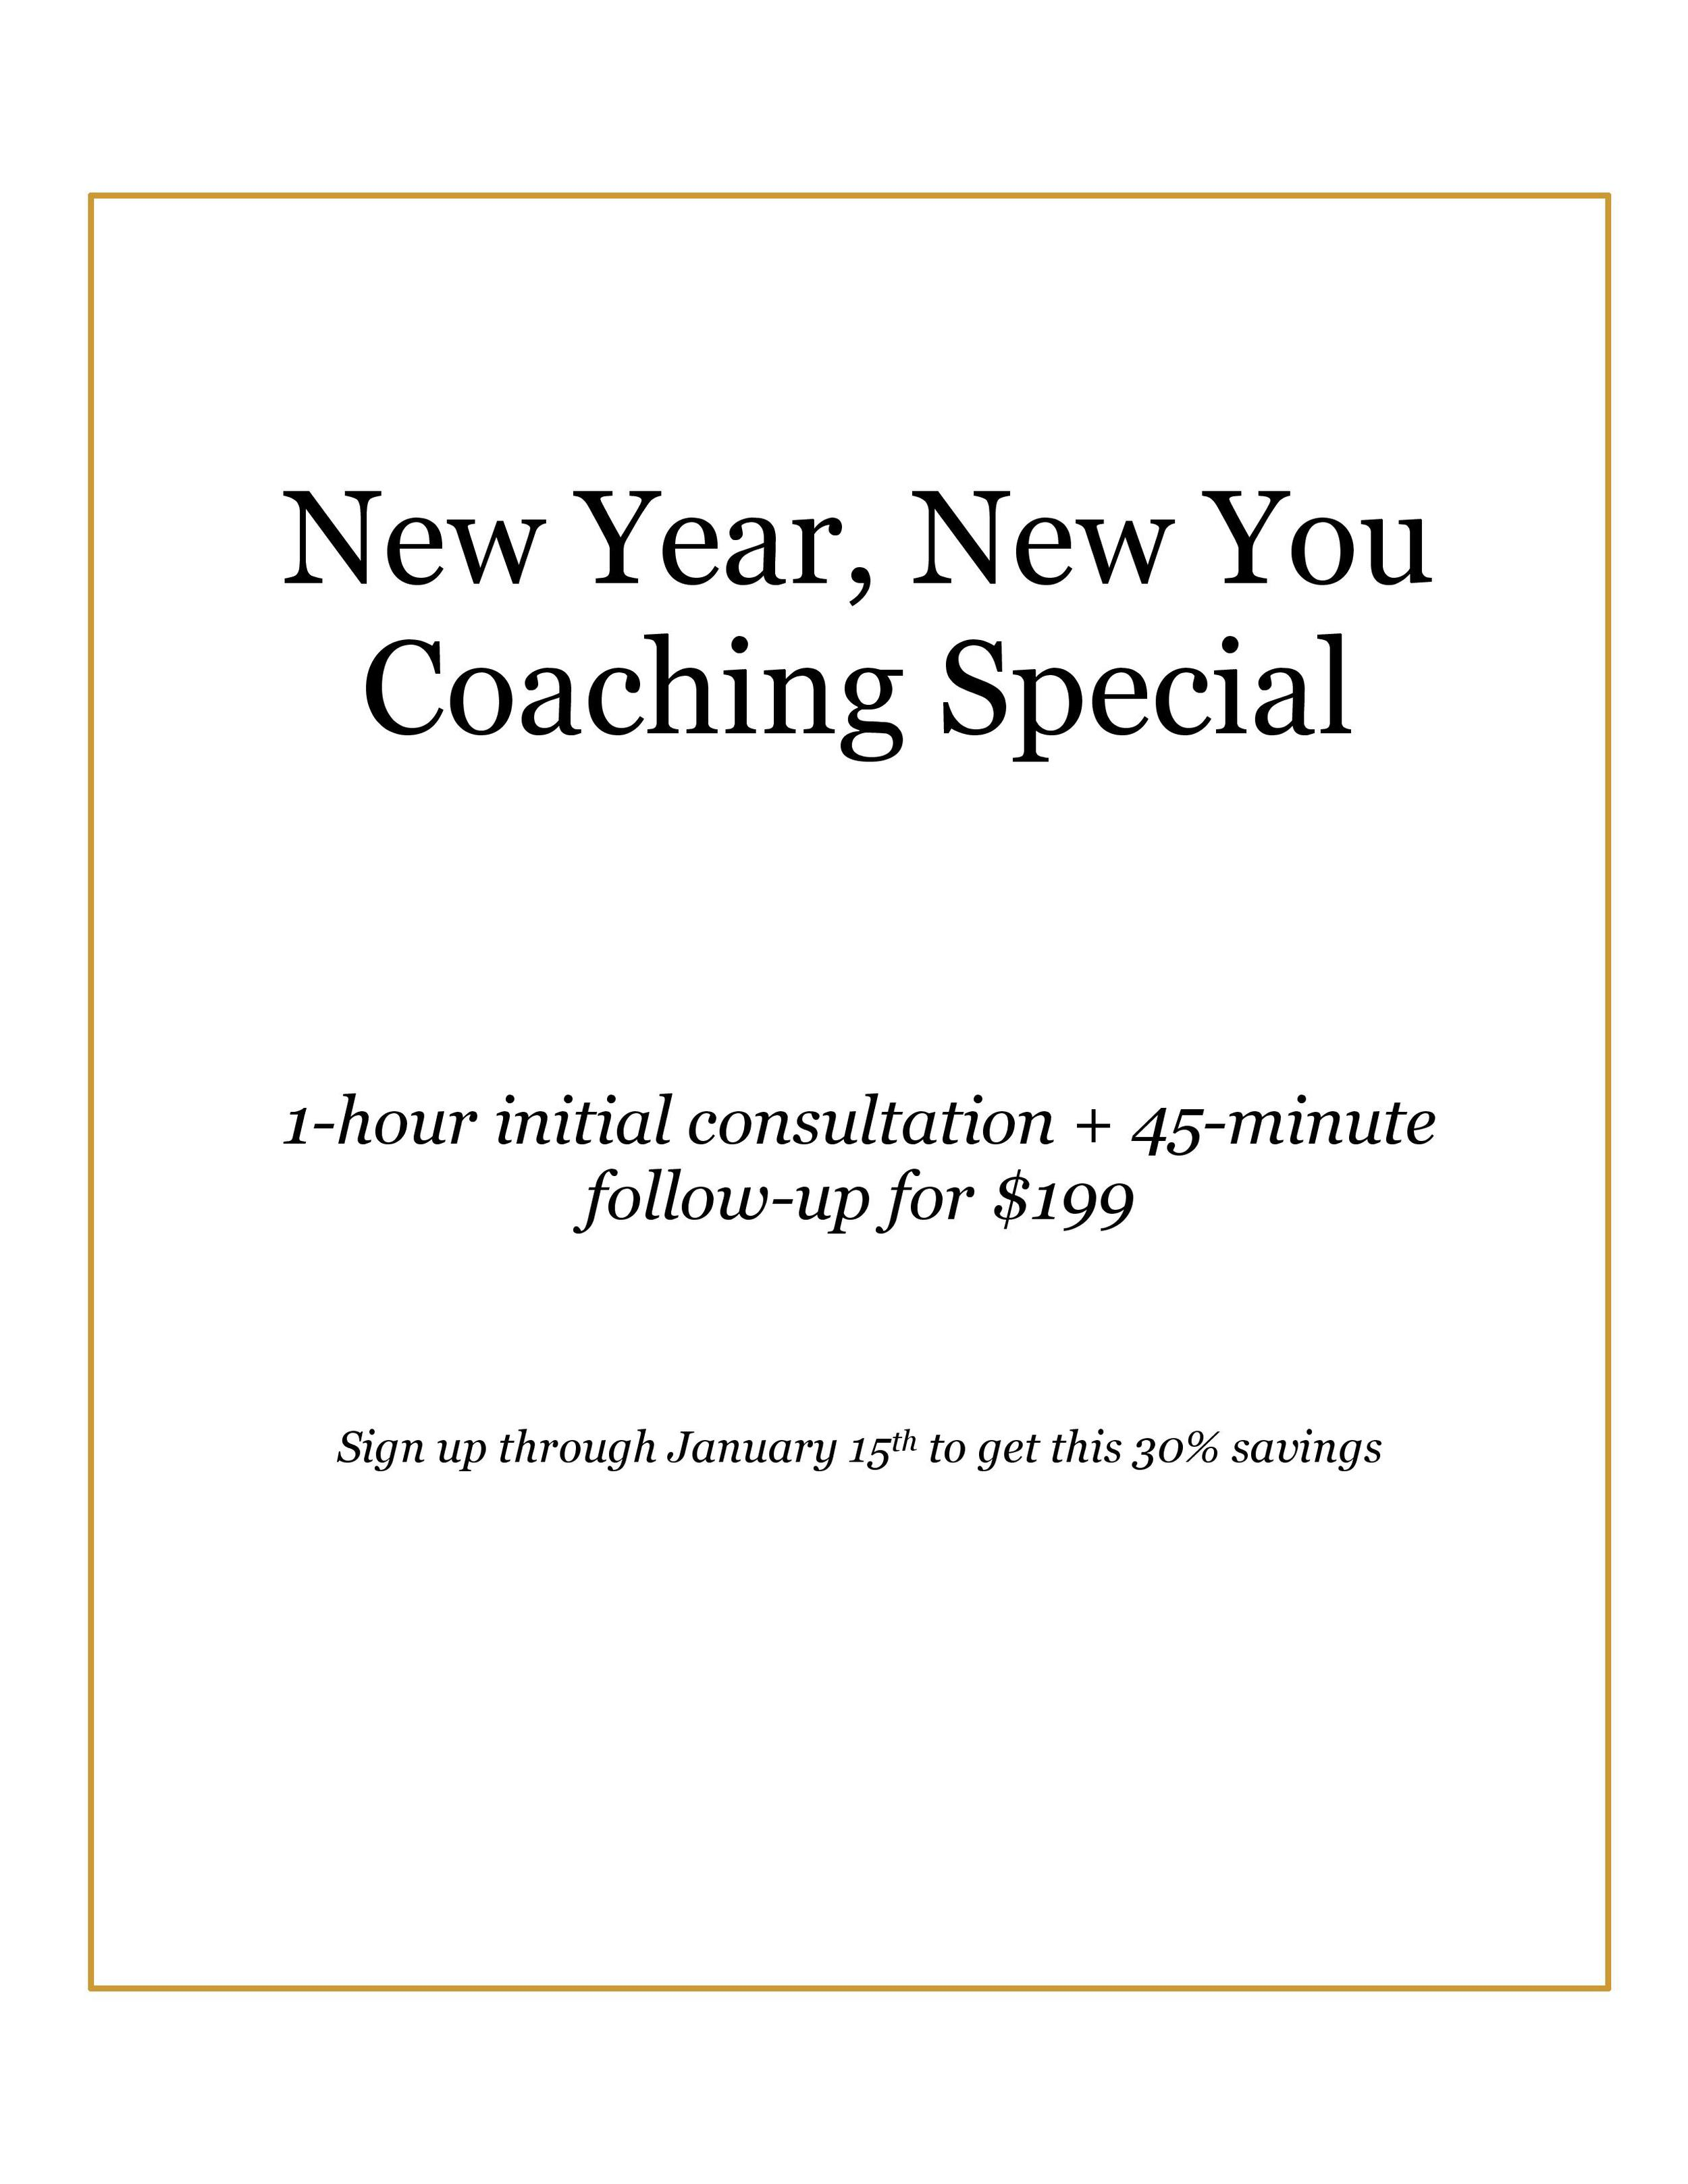 New year, new you coaching special-page-001 copy.jpg